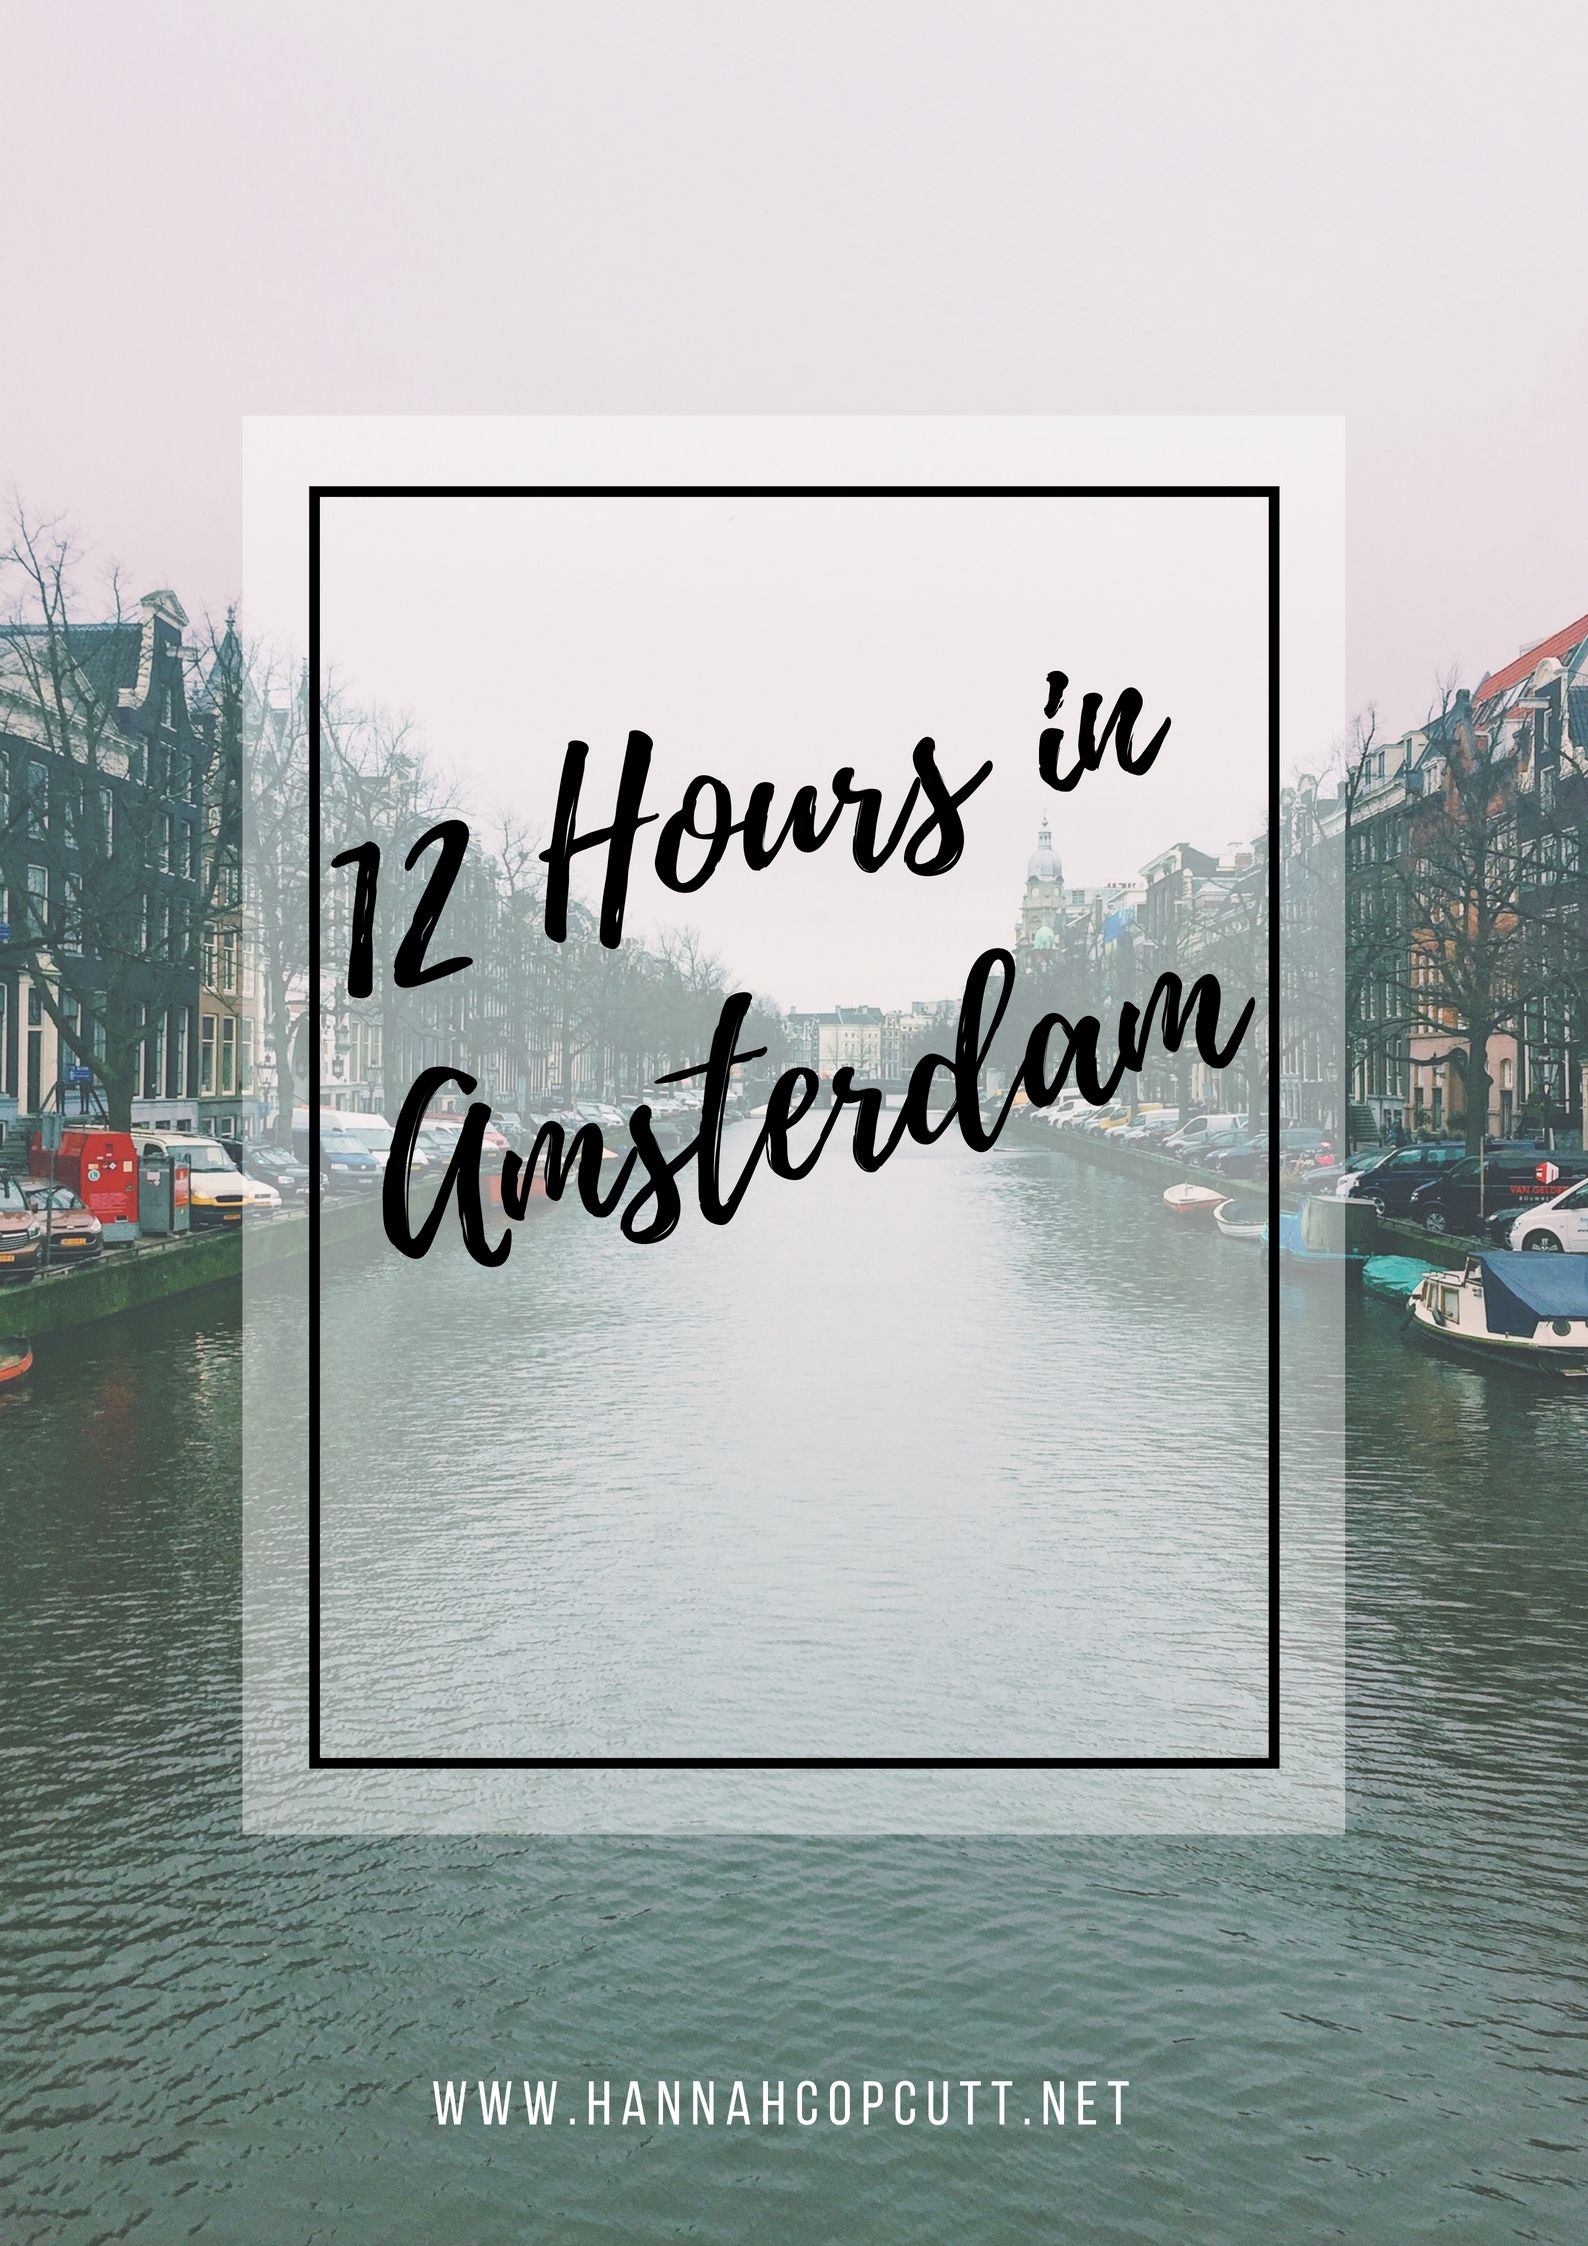 A few weeks ago I went to Amsterdam and here is what I got up to